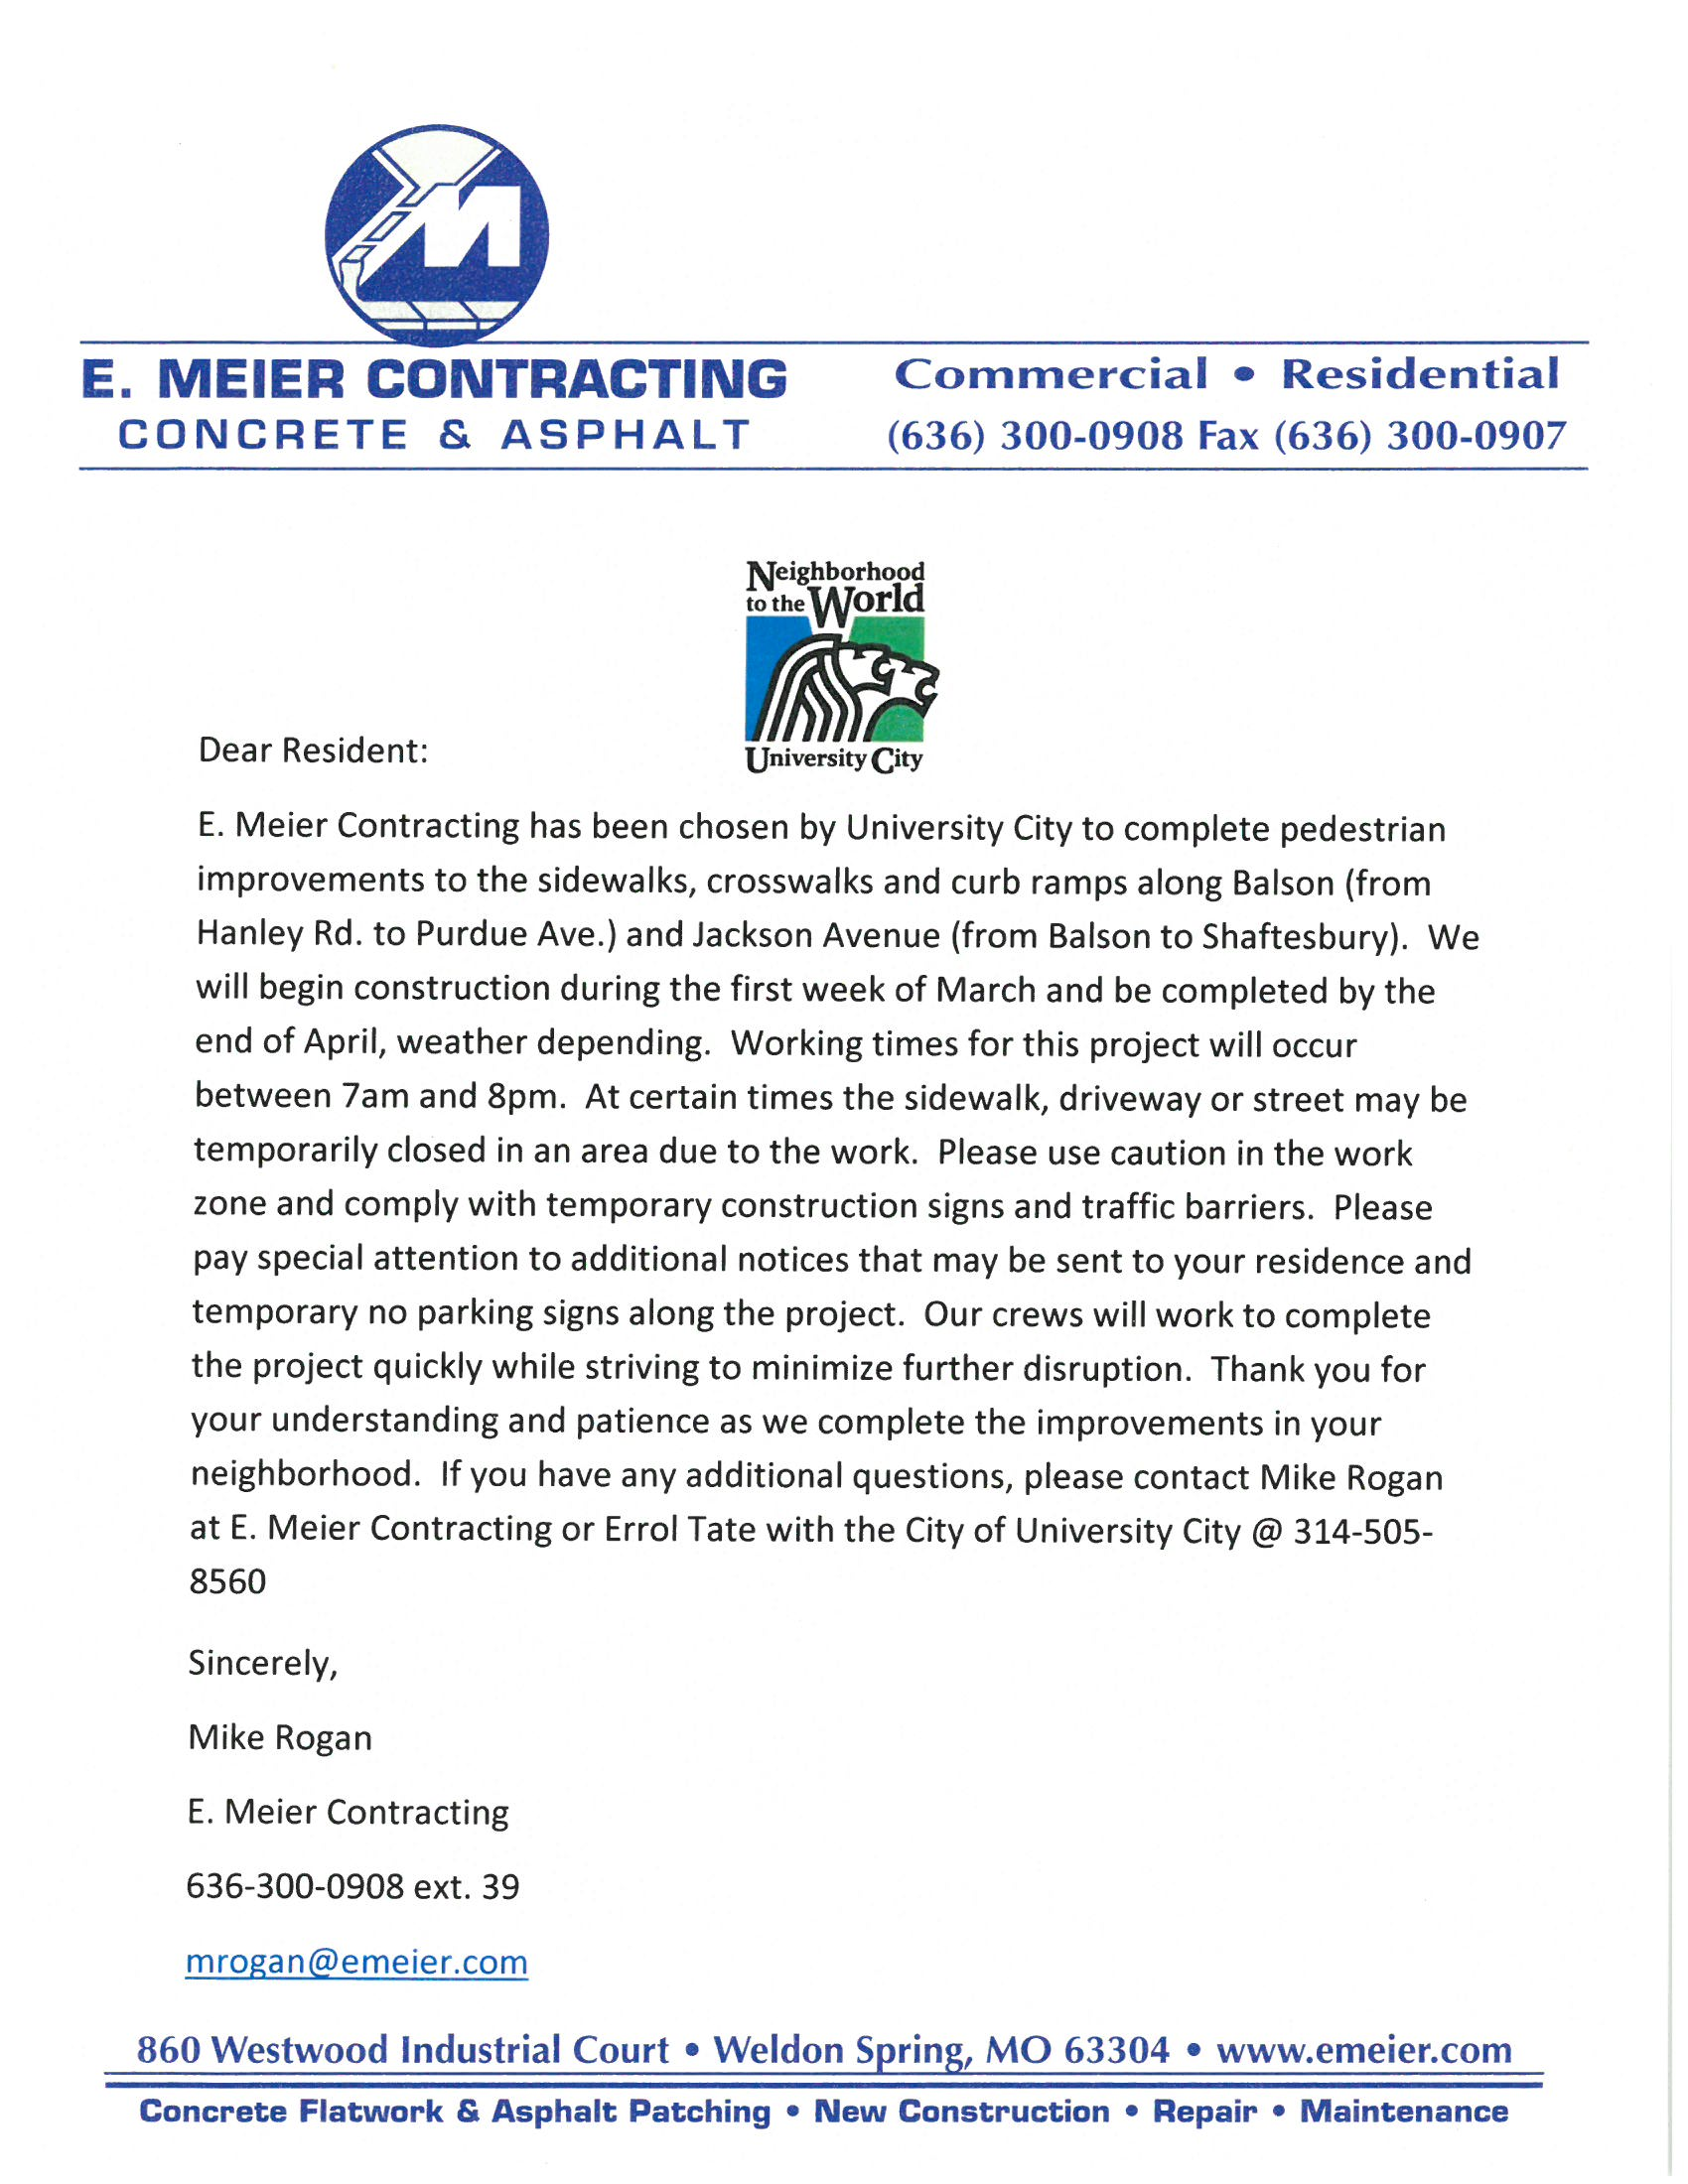 U-City E. Meier construction notice